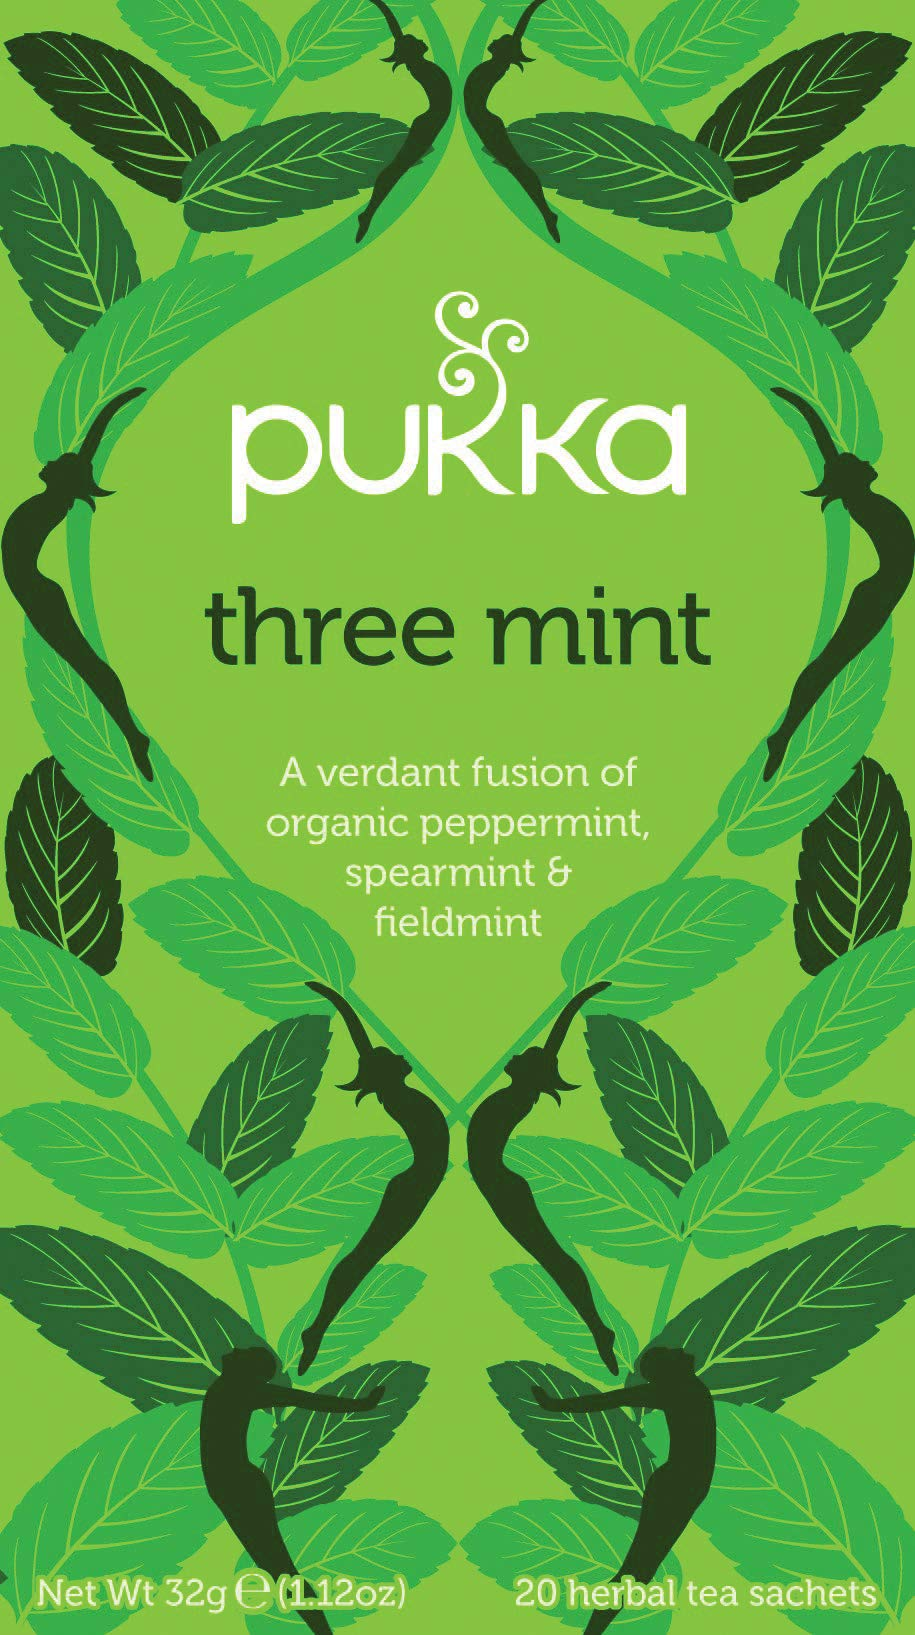 Pukka Digestif range tea bundle (soil association) (infusions) (4 packs of 20 bags) (80 bags) (a spicy tea with aromas of fieldmint, peppermint, spearmint) (brews in up to 15 min)